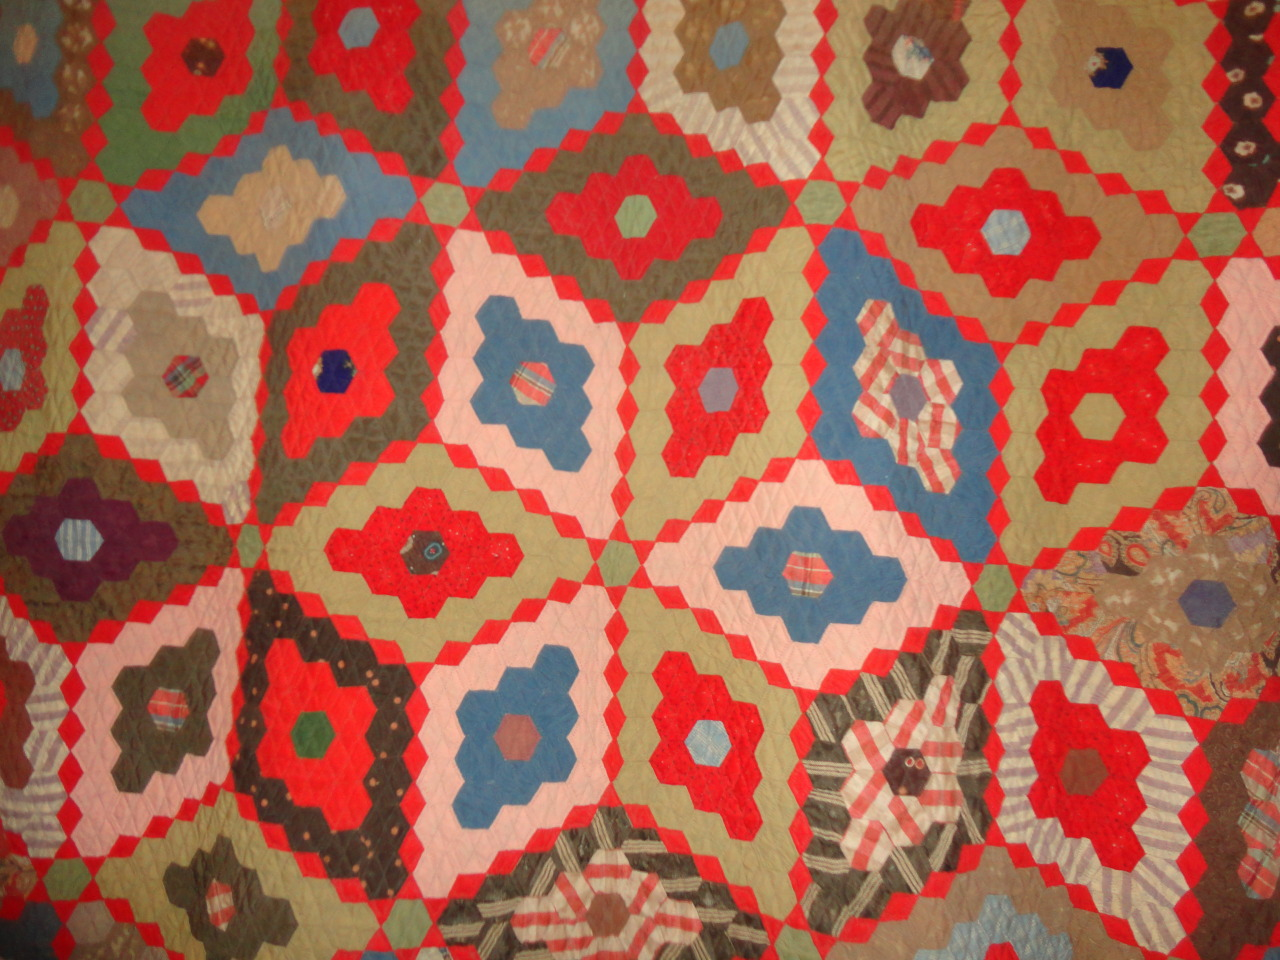 A 3D looking quilt from a show I attended last week.